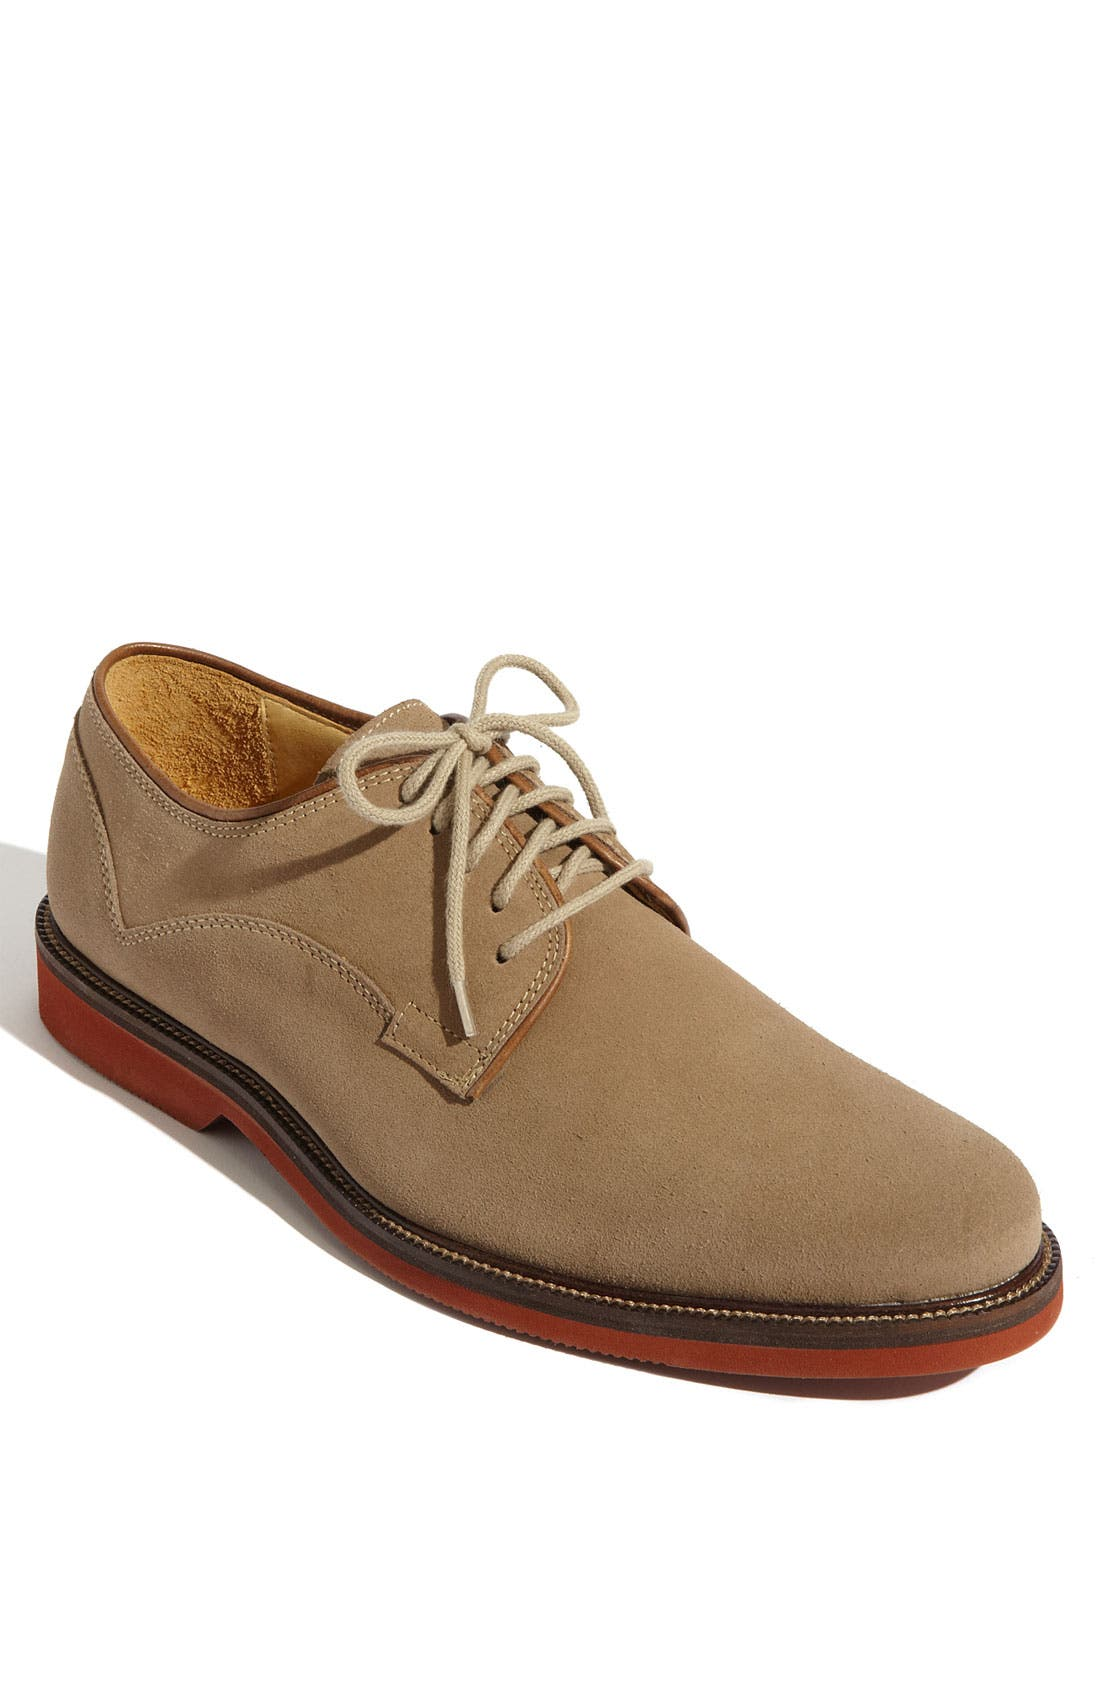 Alternate Image 1 Selected - 1901 'Logan' Oxford (Men)